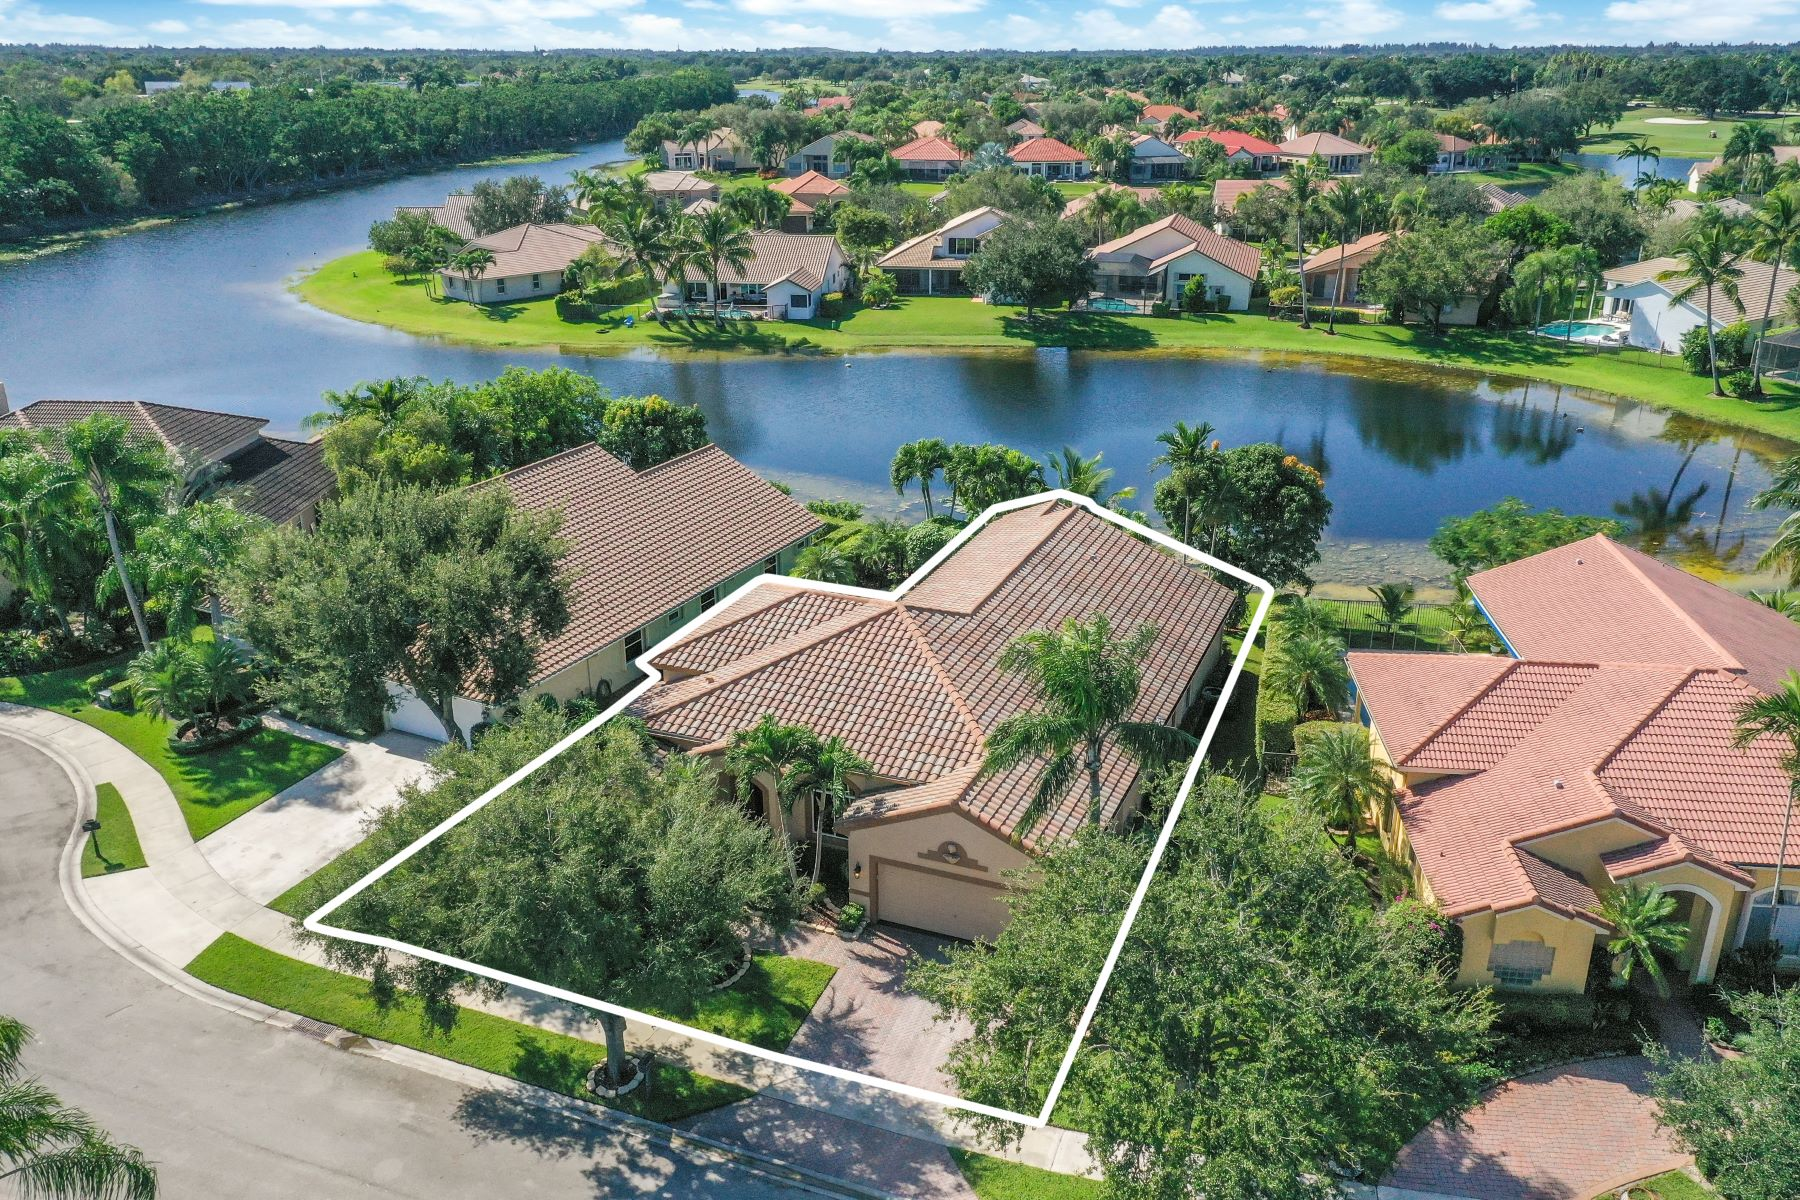 Single Family Homes for Sale at 2675 Palmer Pl Weston, Florida 33332 United States